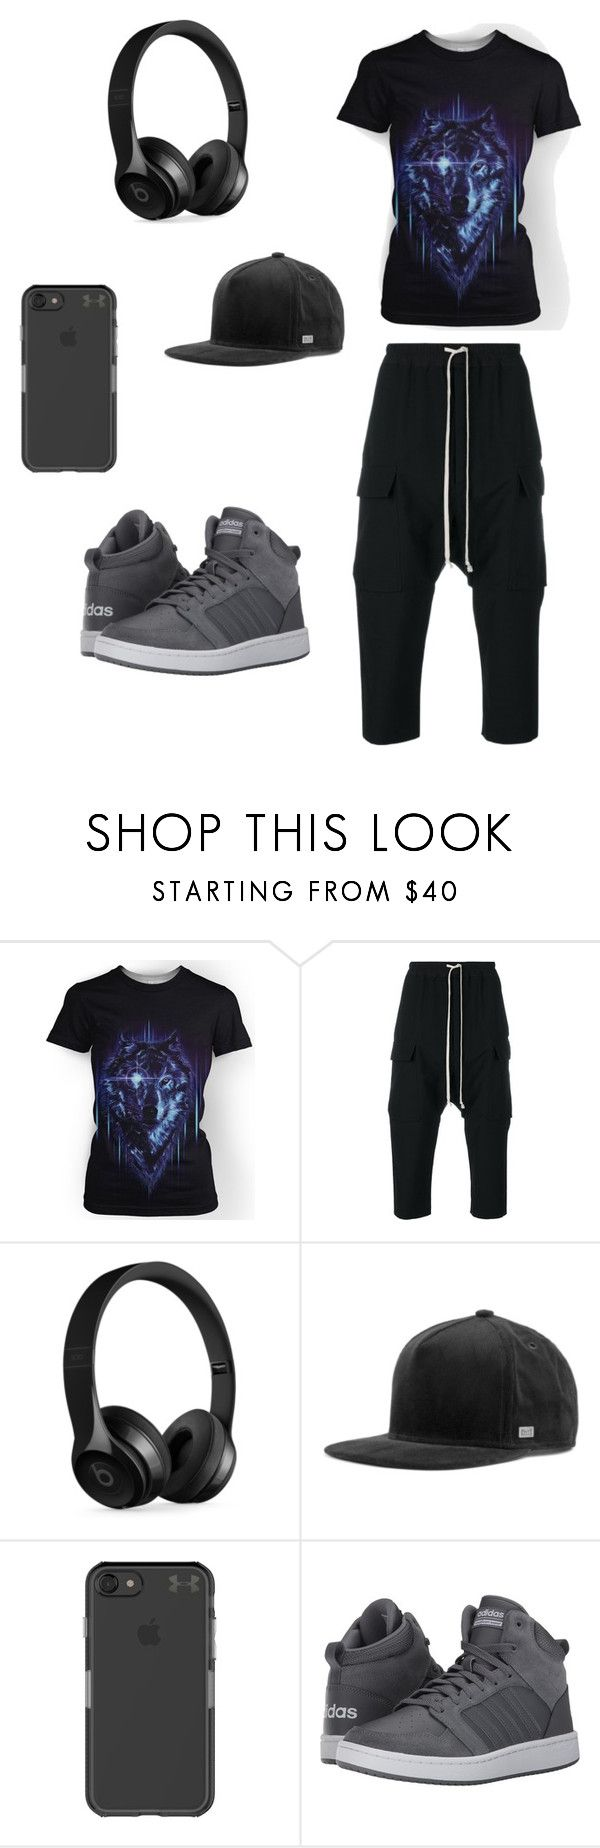 """Comfy"" by tomboy92 ❤ liked on Polyvore featuring Rick Owens, Beats by Dr. Dre, MELIN, Under Armour and adidas"